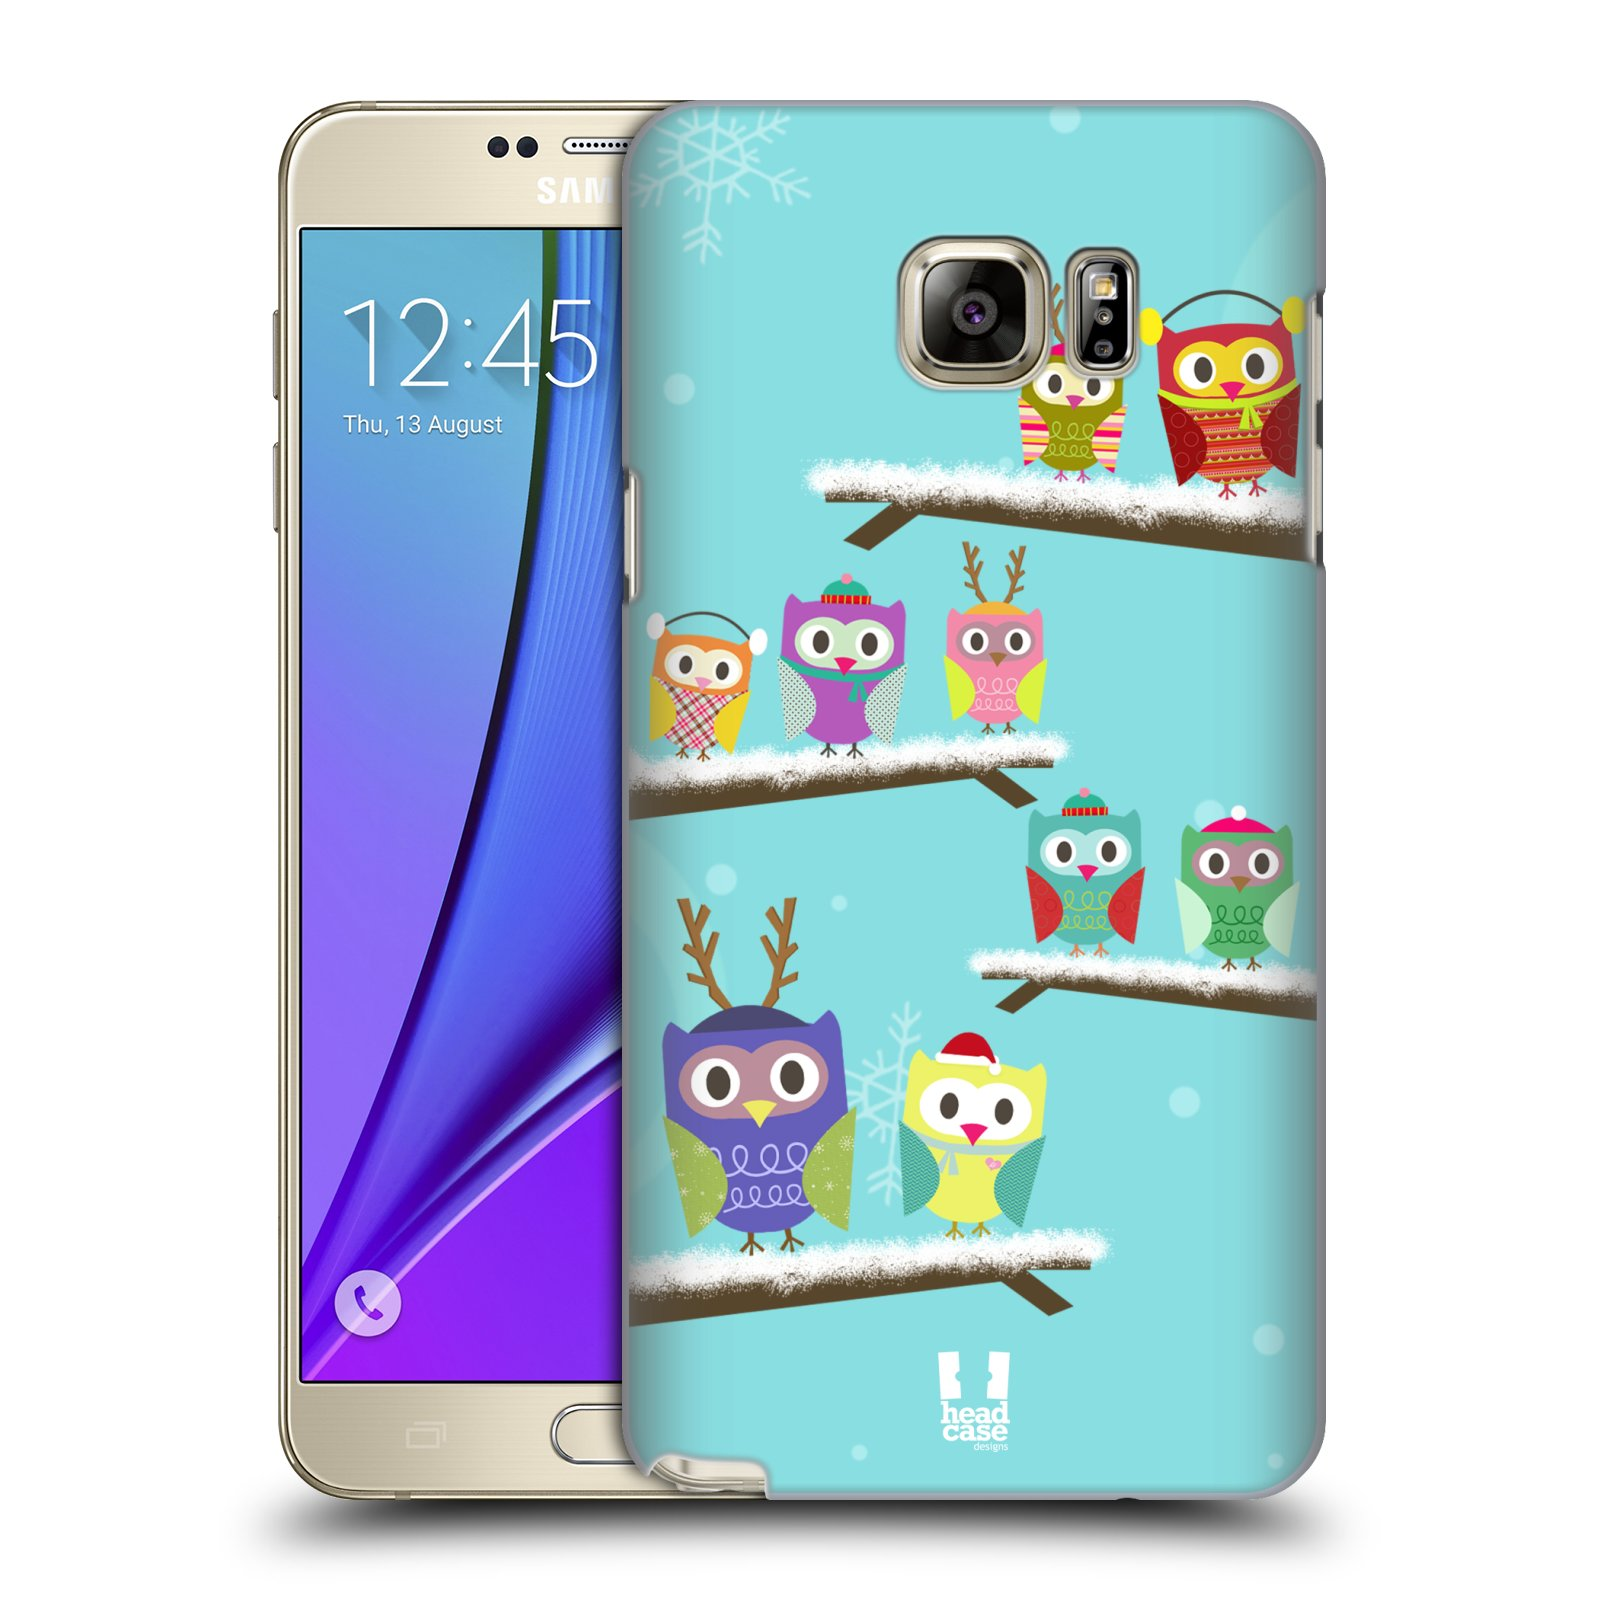 HEAD CASE DESIGNS OWL XMAS HARD BACK CASE FOR SAMSUNG GALAXY NOTE 5